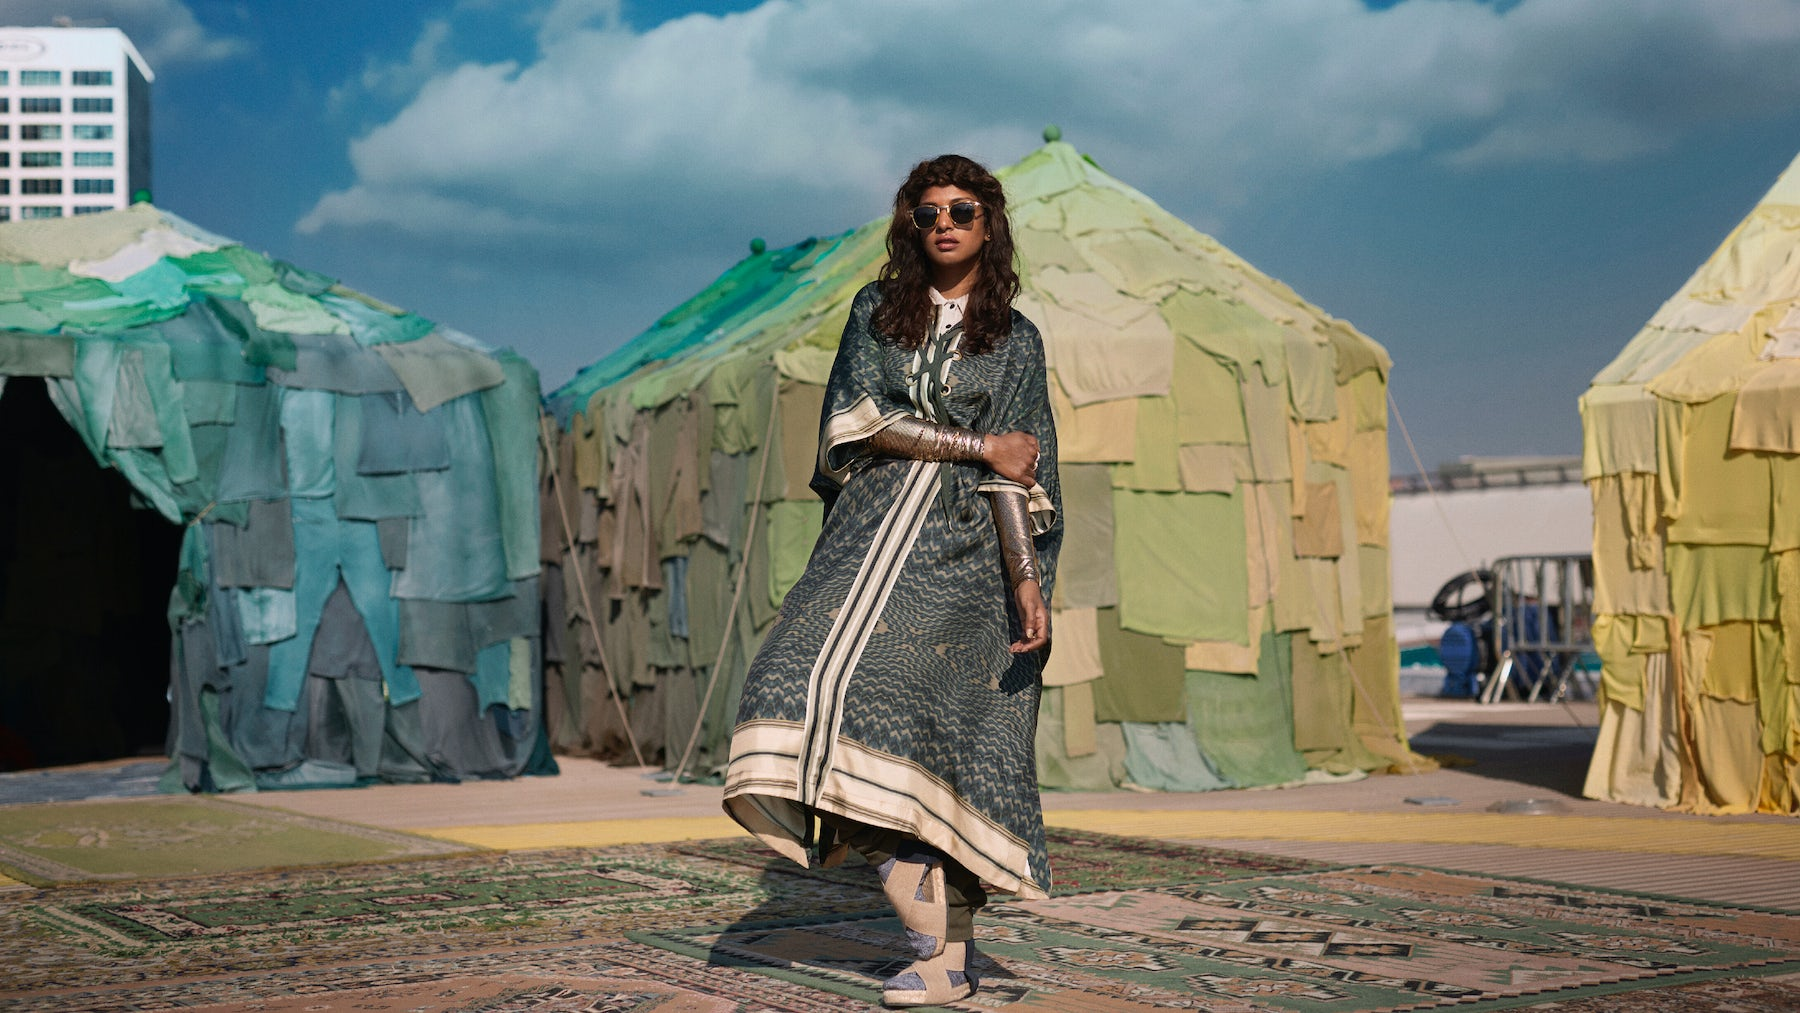 """M.I.A stars in """"Rewear It,"""" the campaign video for H&M's World Recycle Week 2016 